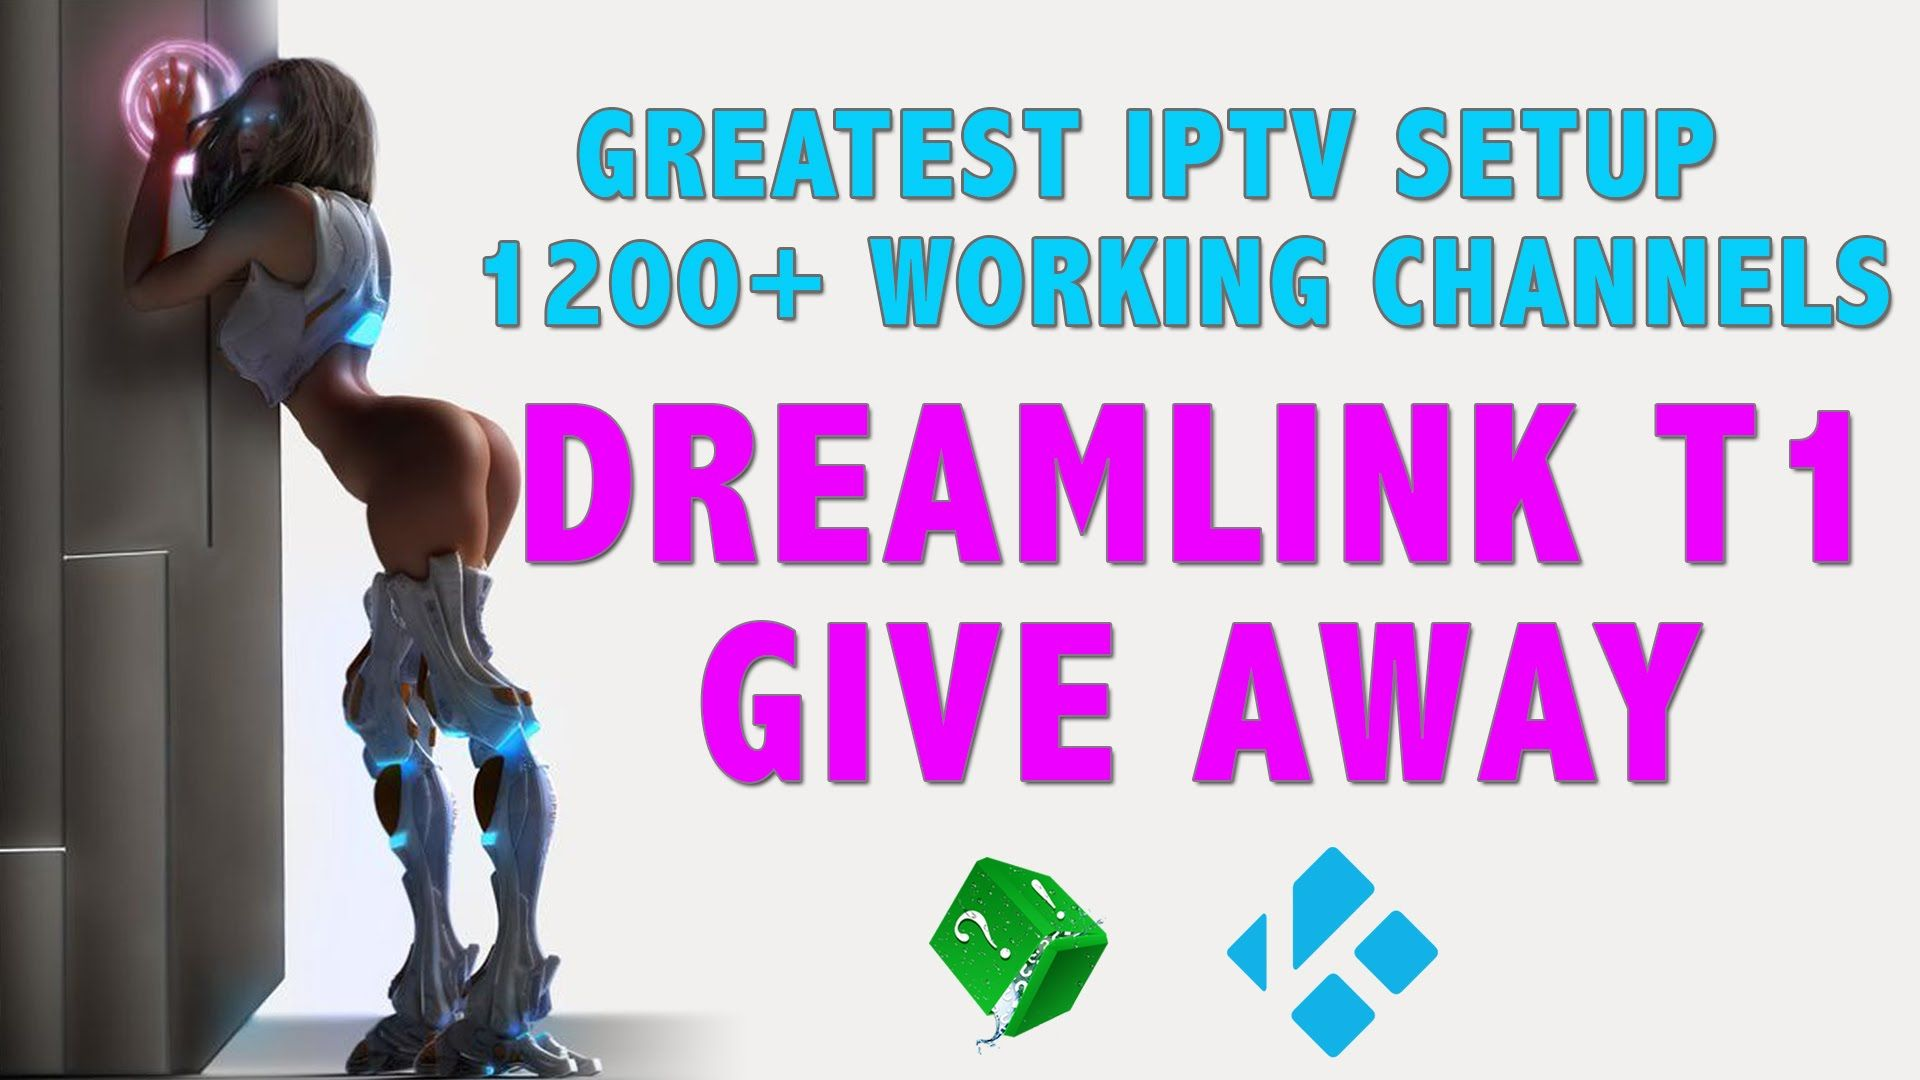 THE BEST IPTV SETUP 1200+ WORKING CHANNELS (DREAMLINK T1 BOX GIVAWAY